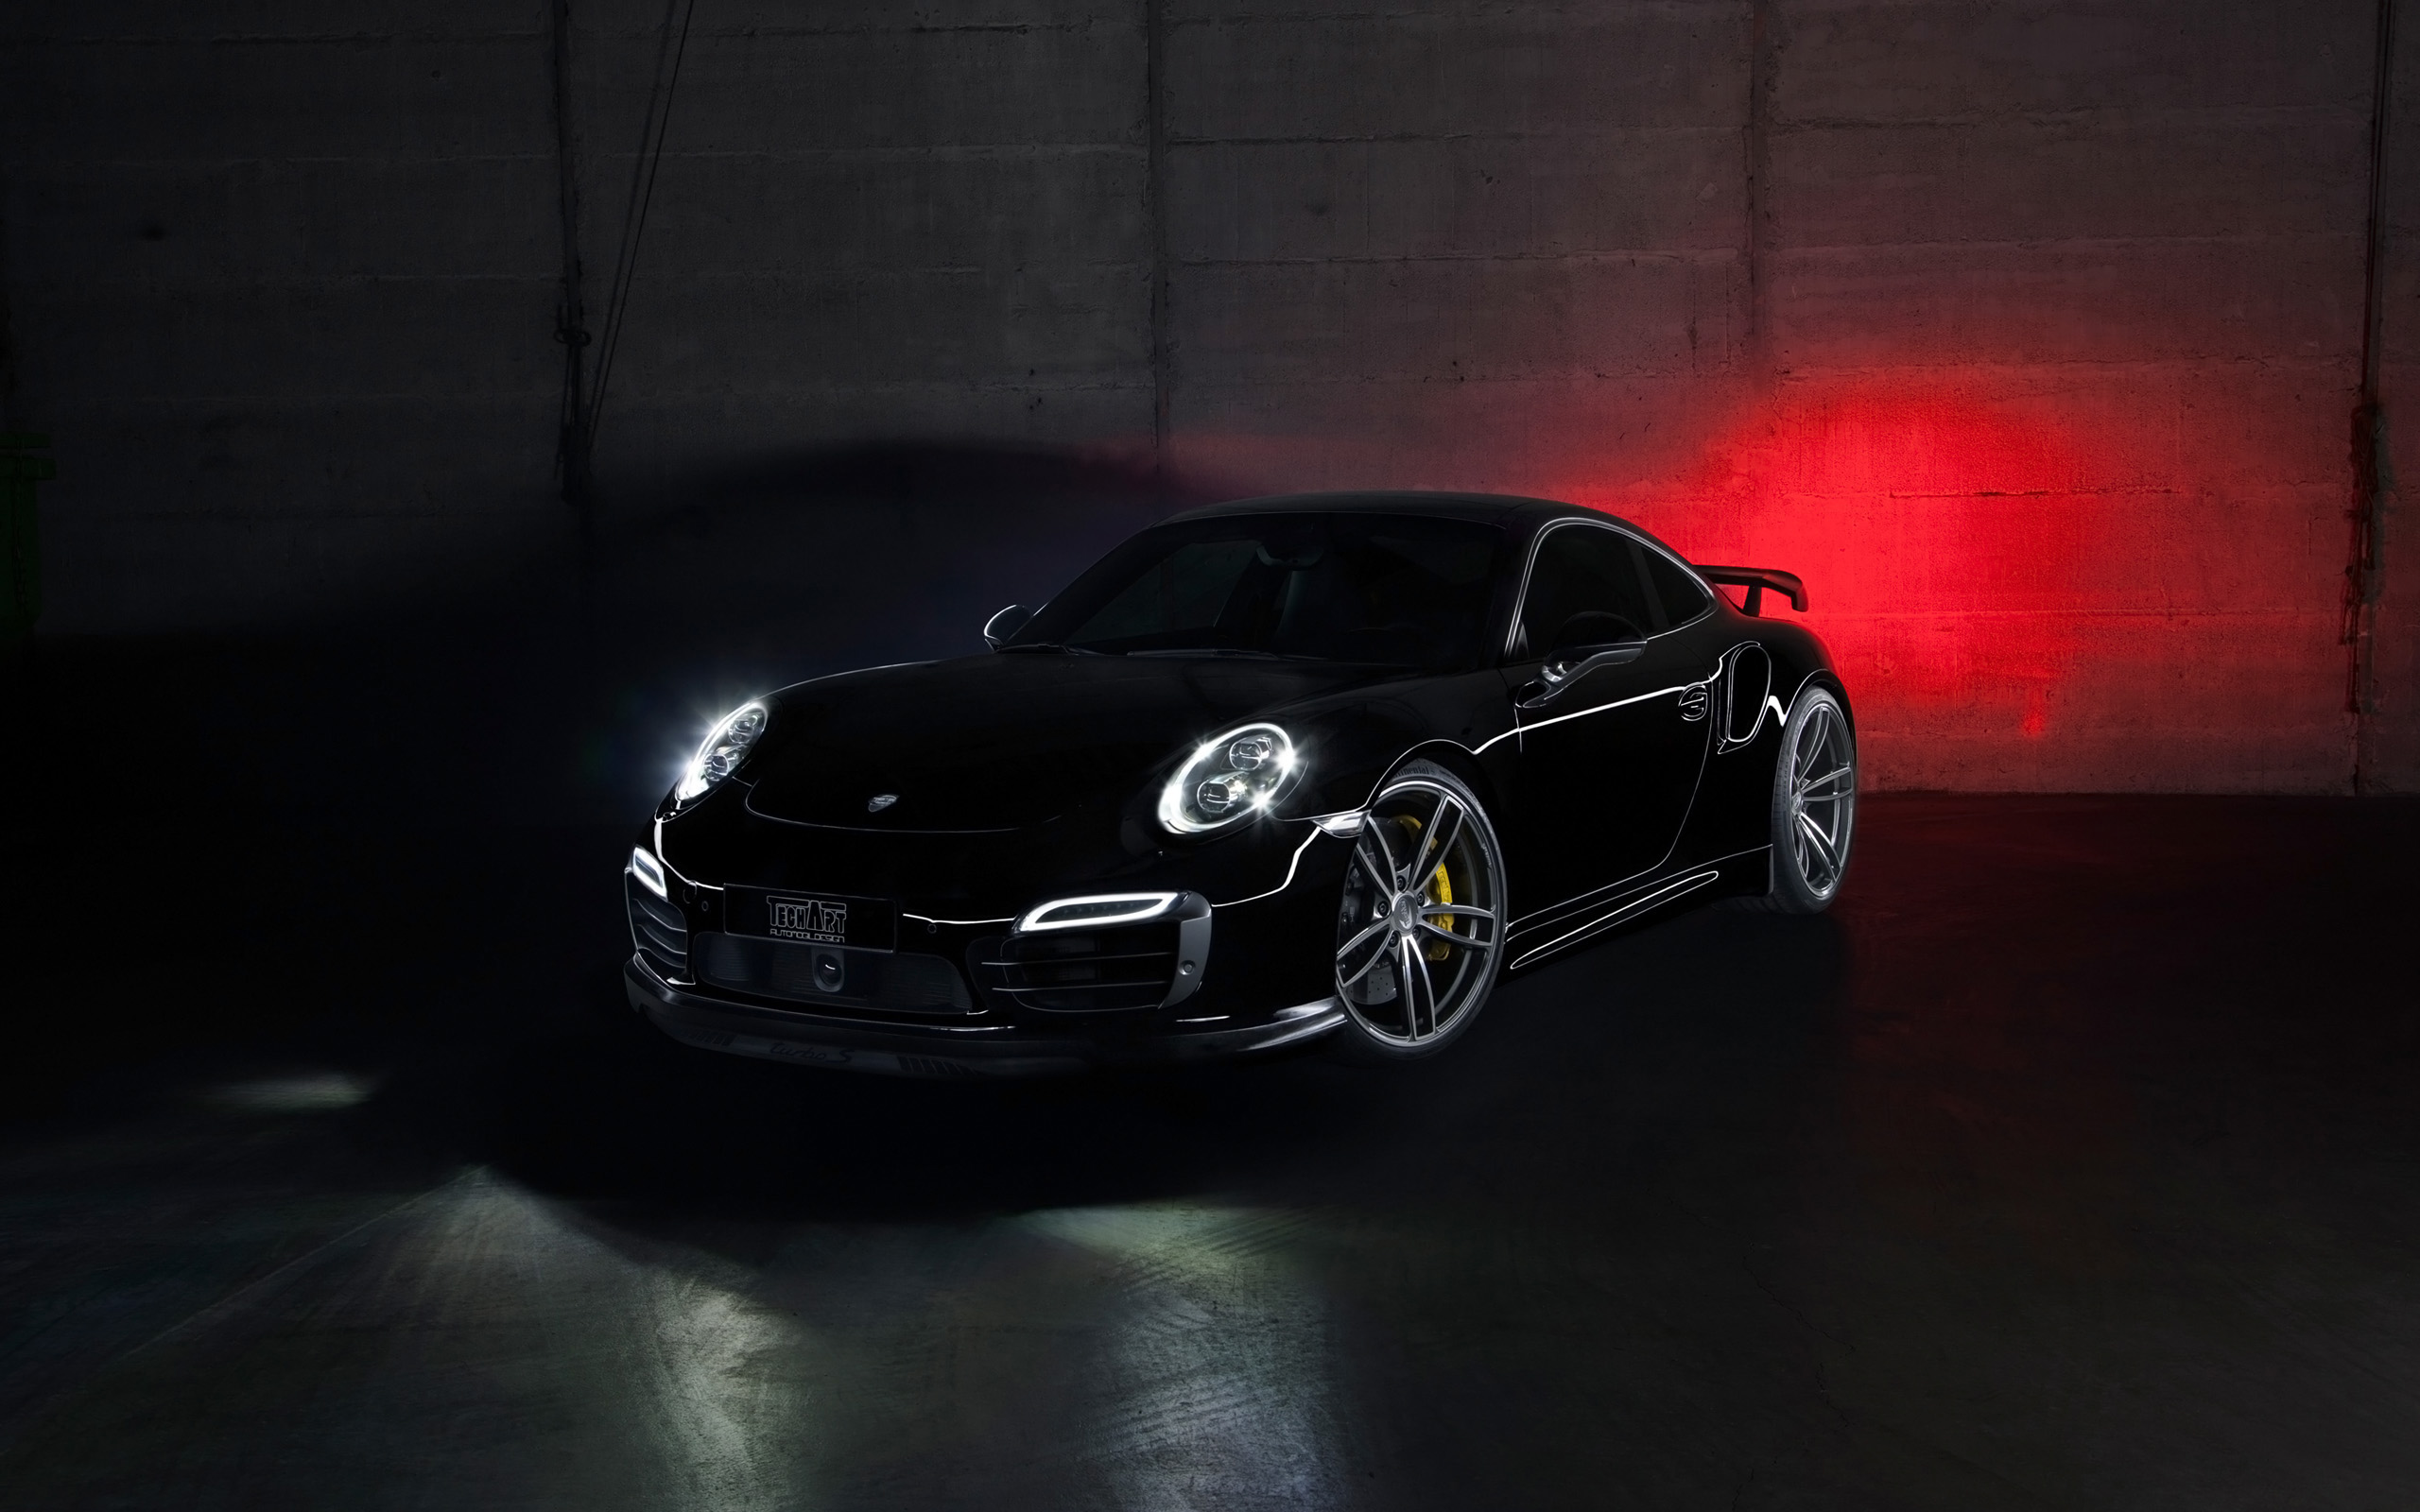 2013 TechArt Porsche 911 Turbo Wallpaper | HD Car ...